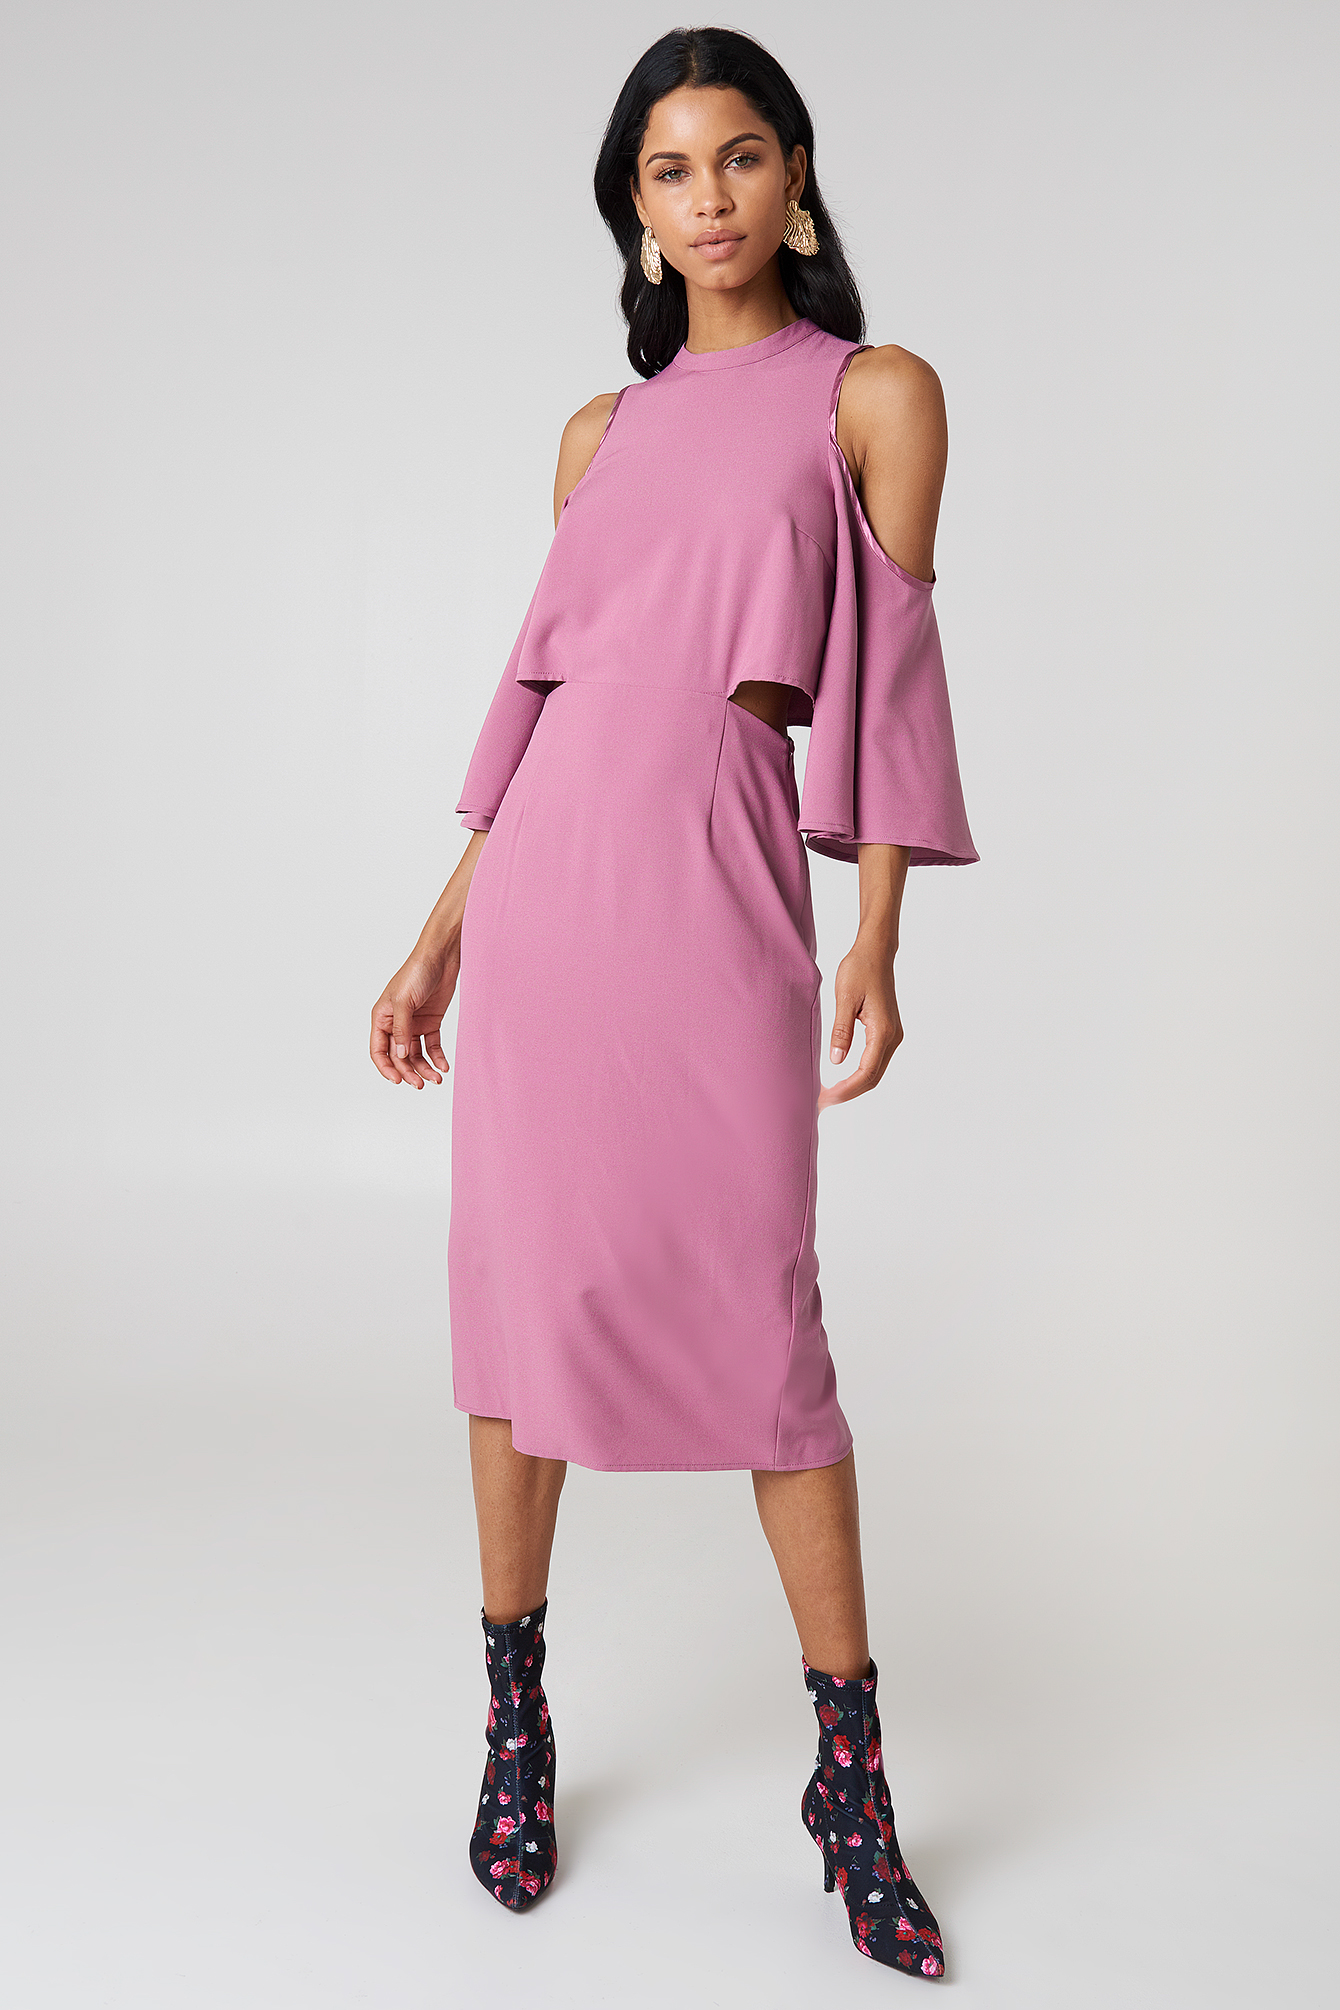 NA-KD Cut Out Tied Neck Dress - Party Dresses - Purple